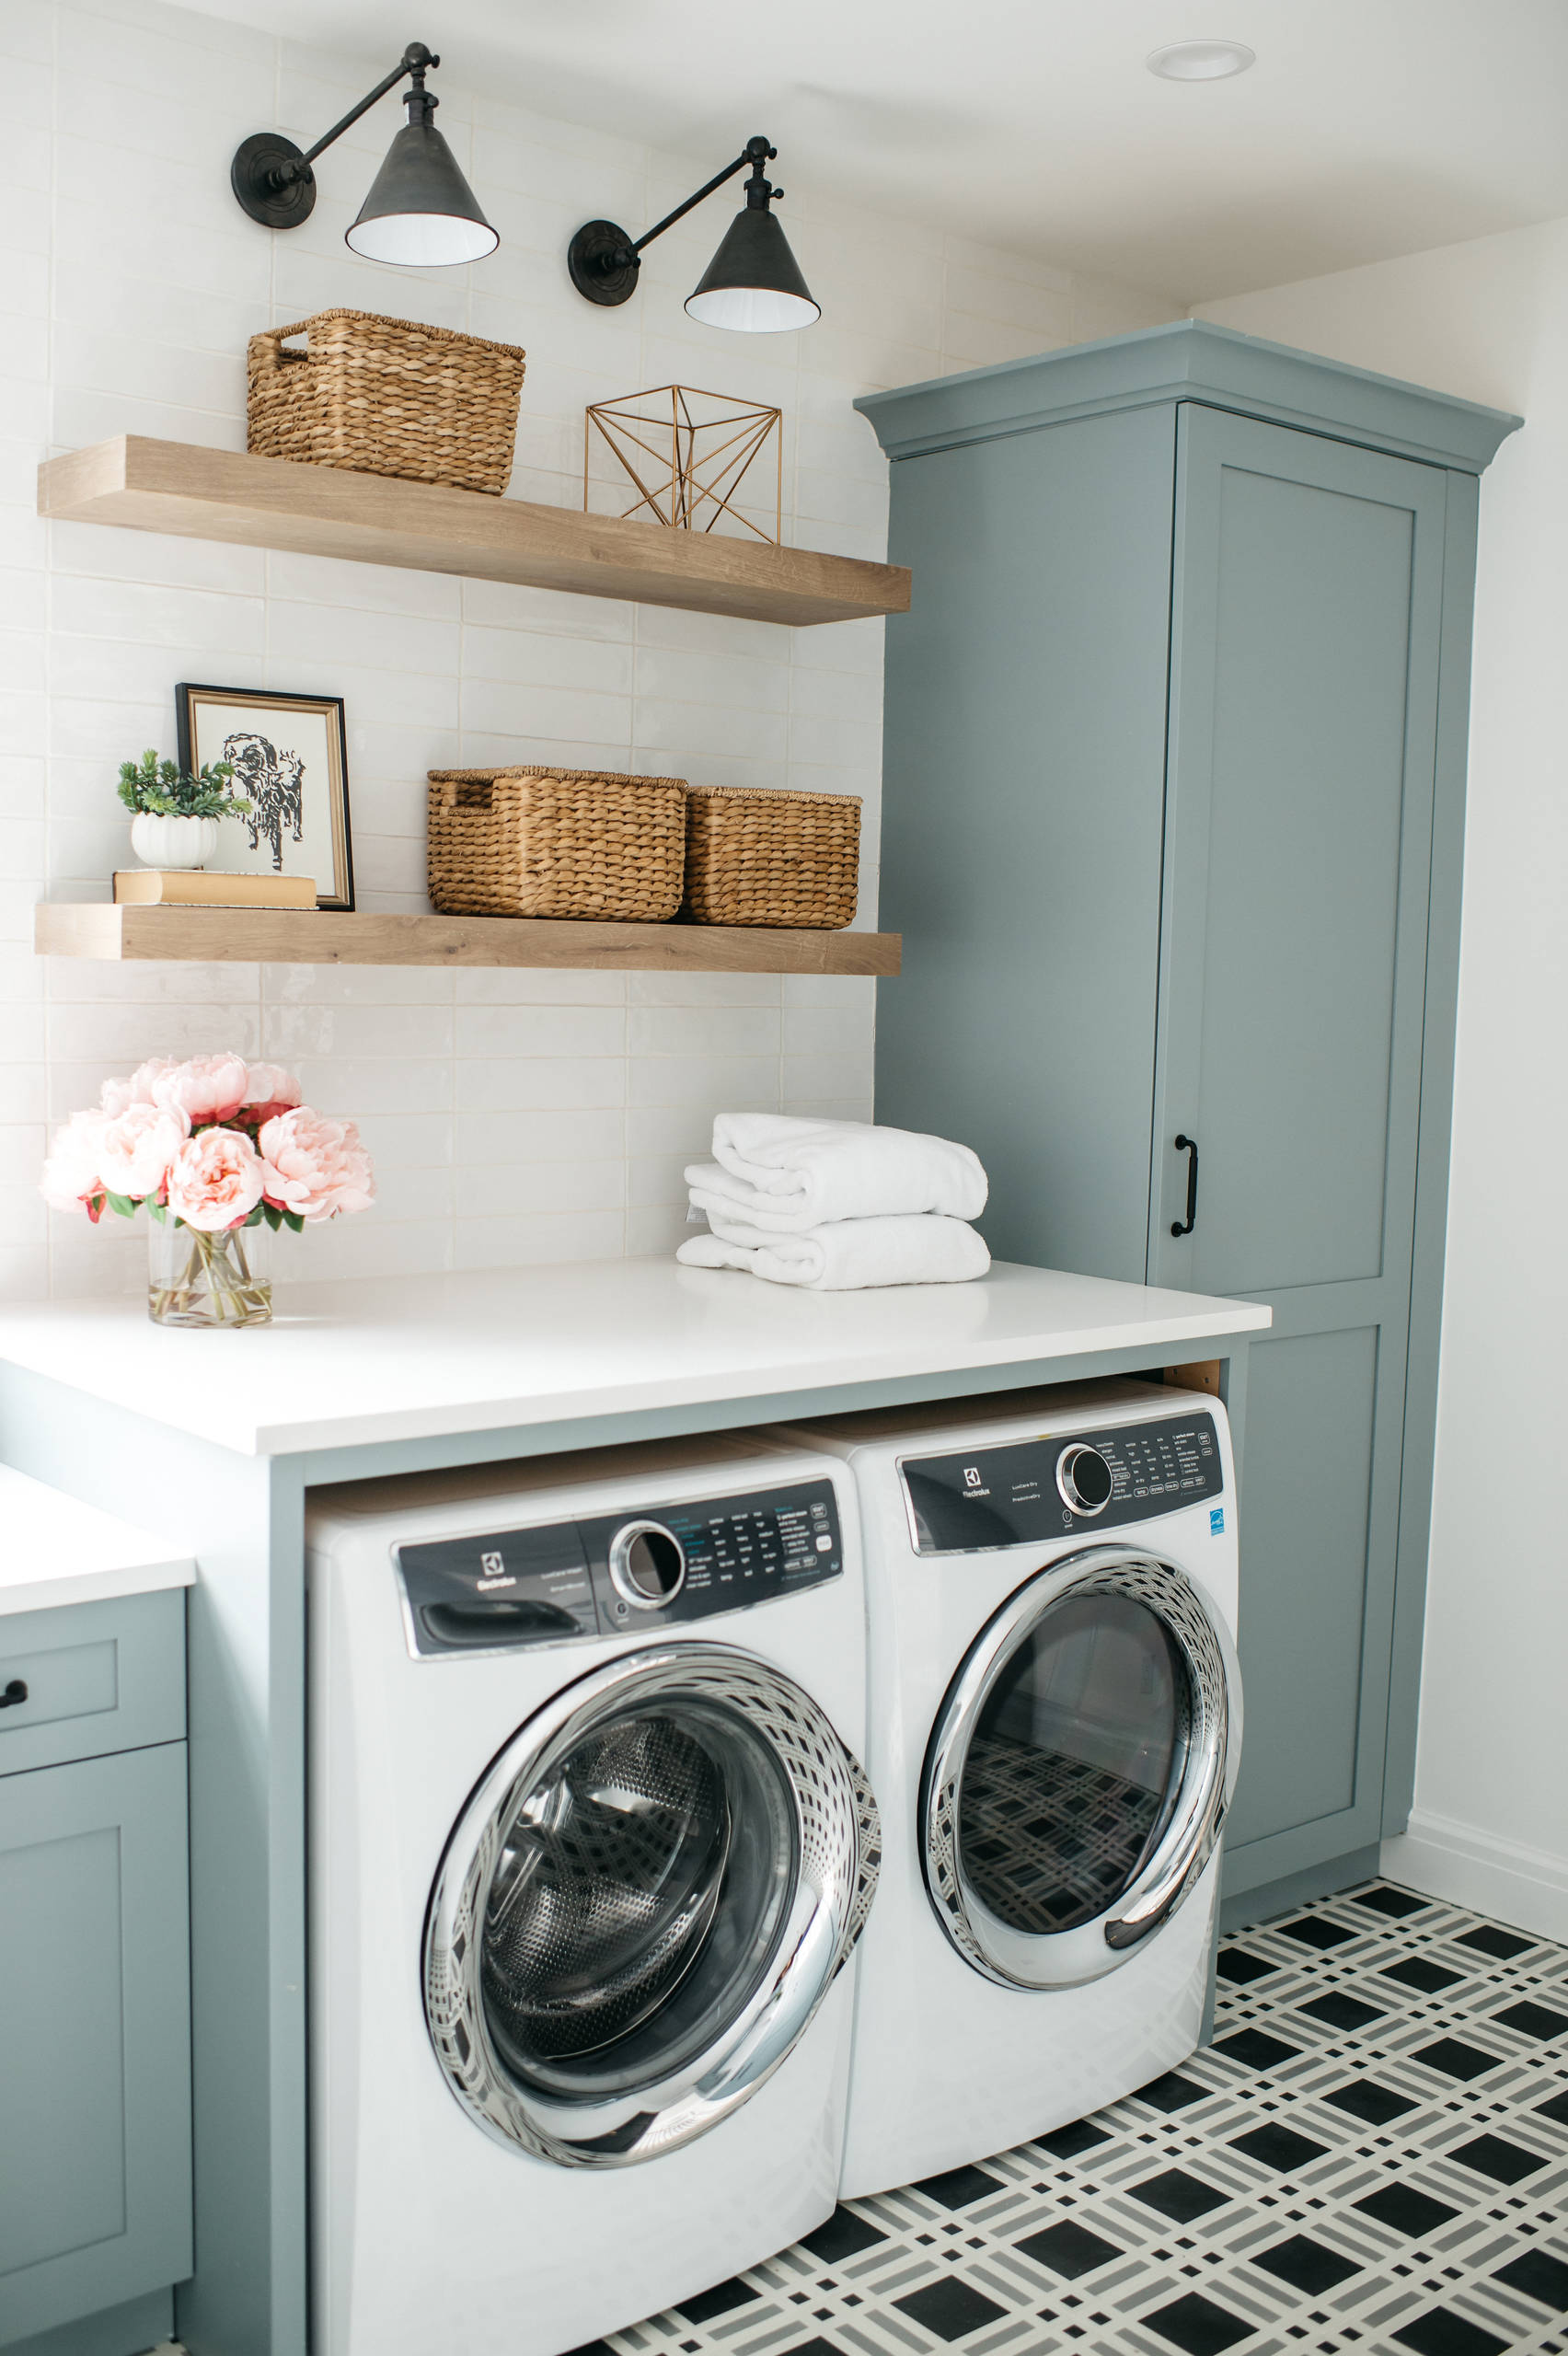 29 Beautiful Farmhouse Laundry Room Pictures & Ideas - September